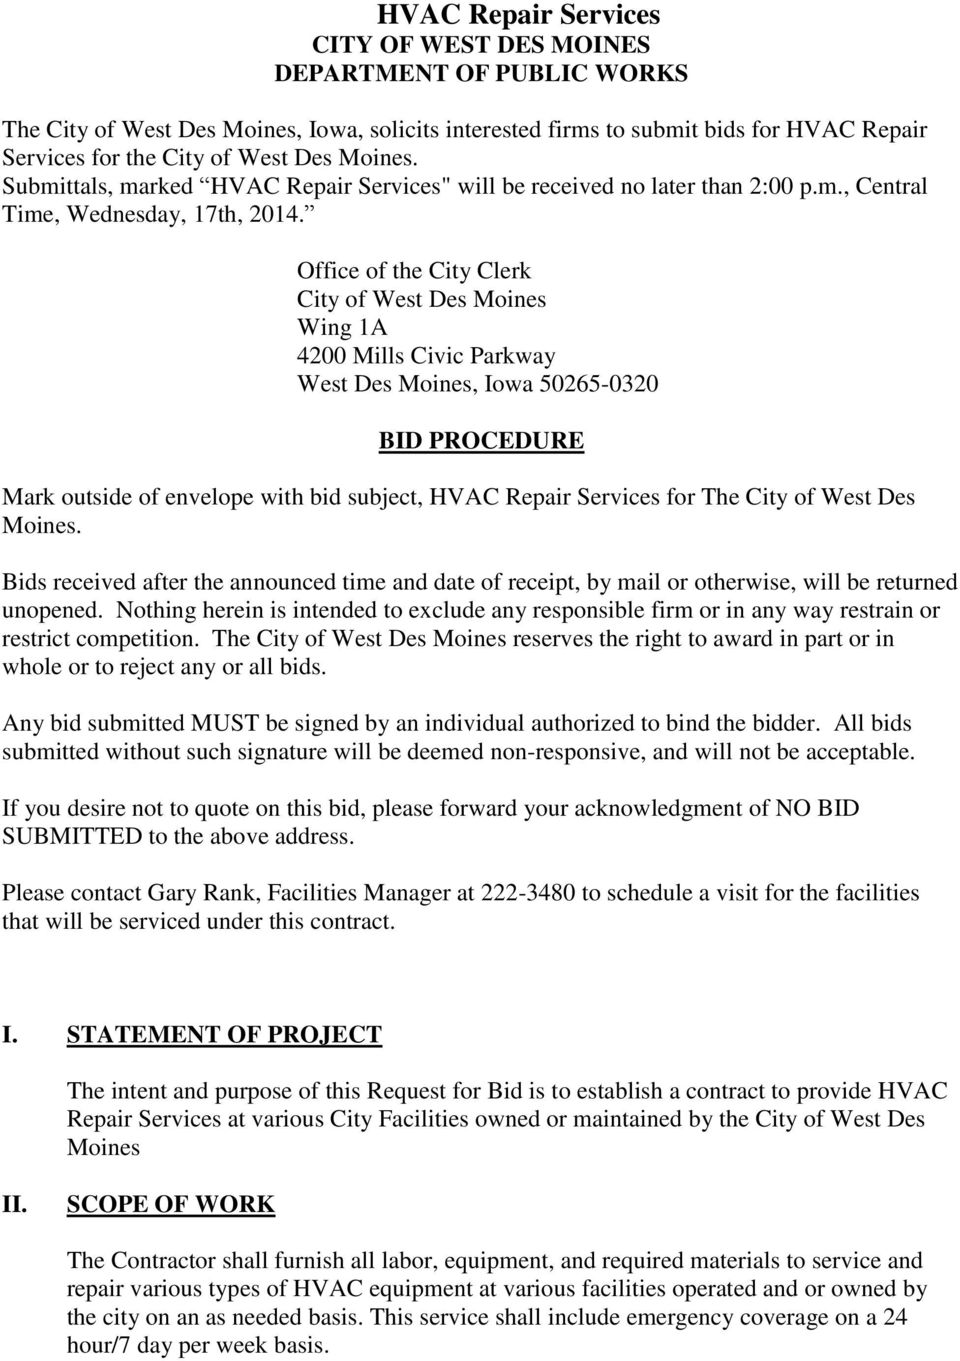 Office of the City Clerk City of West Des Moines Wing 1A 4200 Mills Civic Parkway West Des Moines, Iowa 50265-0320 BID PROCEDURE Mark outside of envelope with bid subject, HVAC Repair Services for